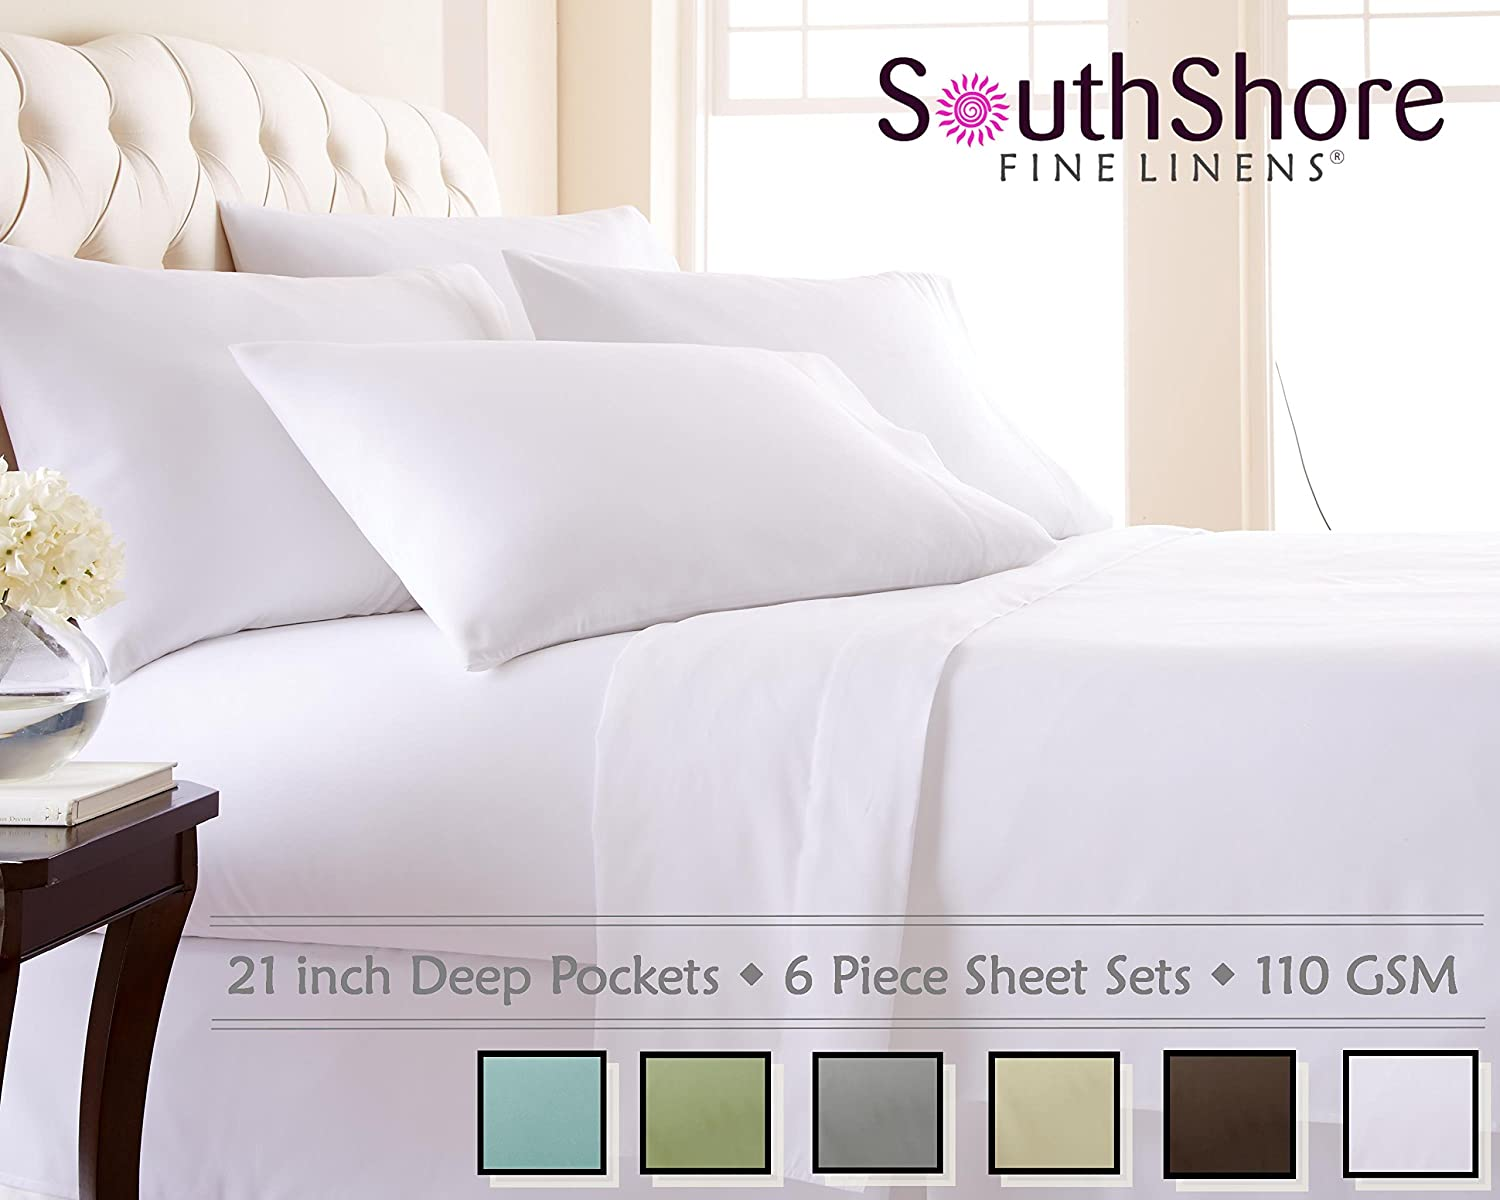 Extra deep pocket queen fitted sheets - Amazon Com Southshore Fine Linens 6 Piece Extra Deep Pocket Sheet Set White King Home Kitchen